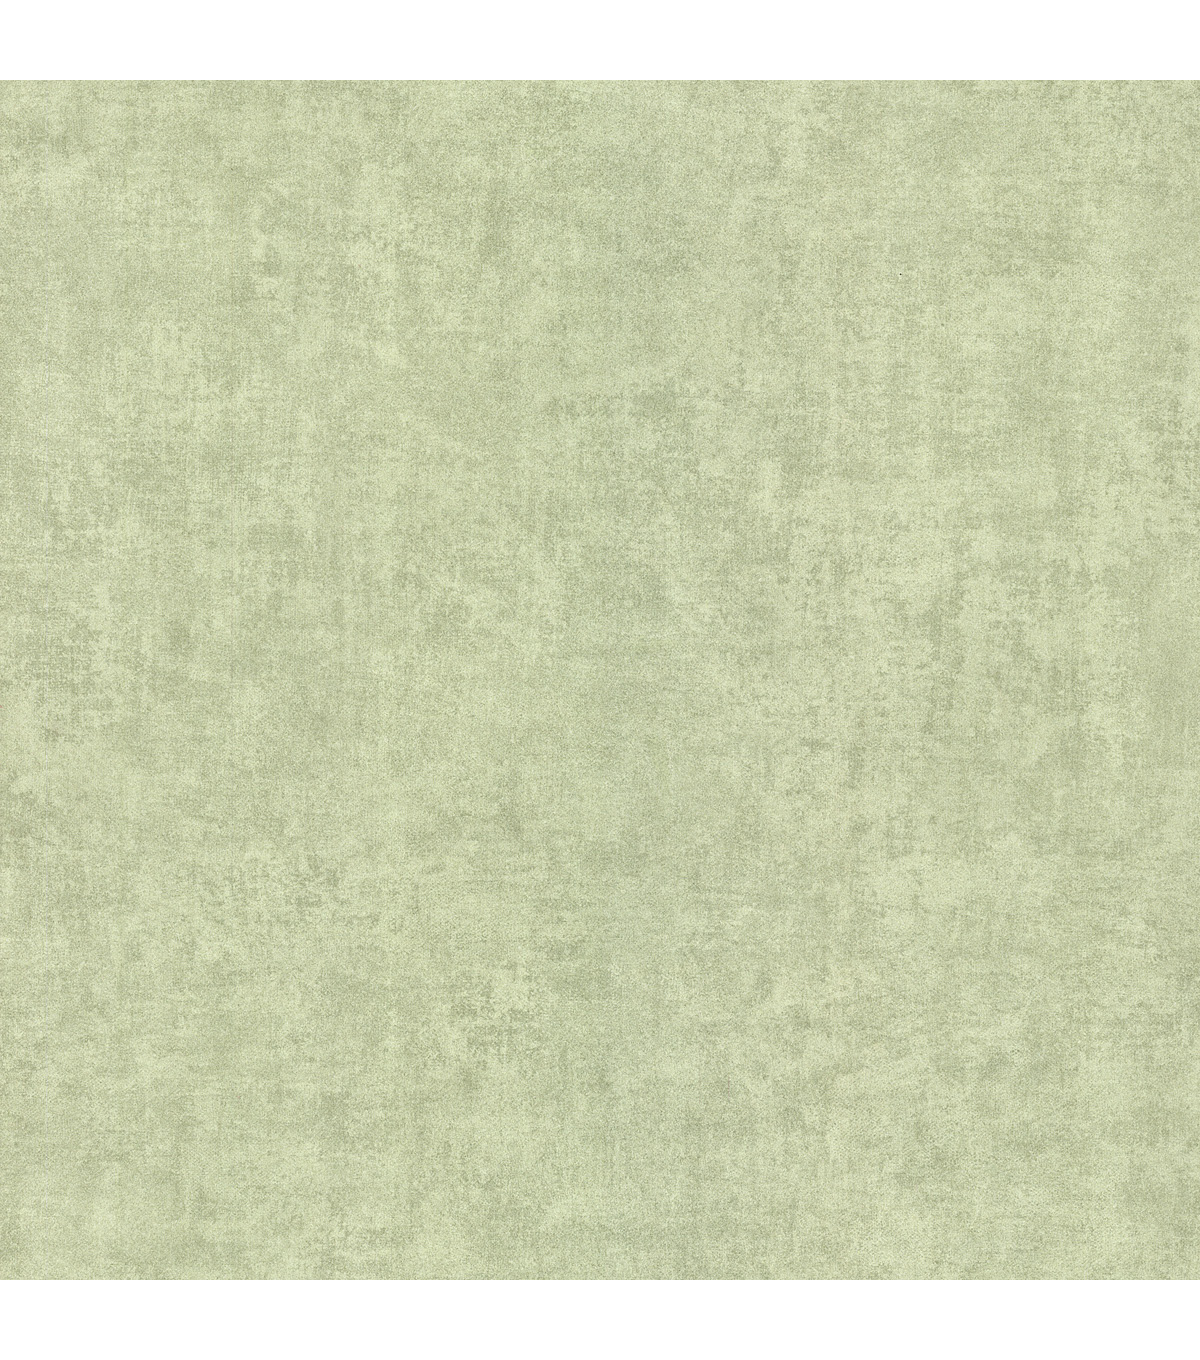 Ardesia Light Green Blossom Texture Wallpaper Sample